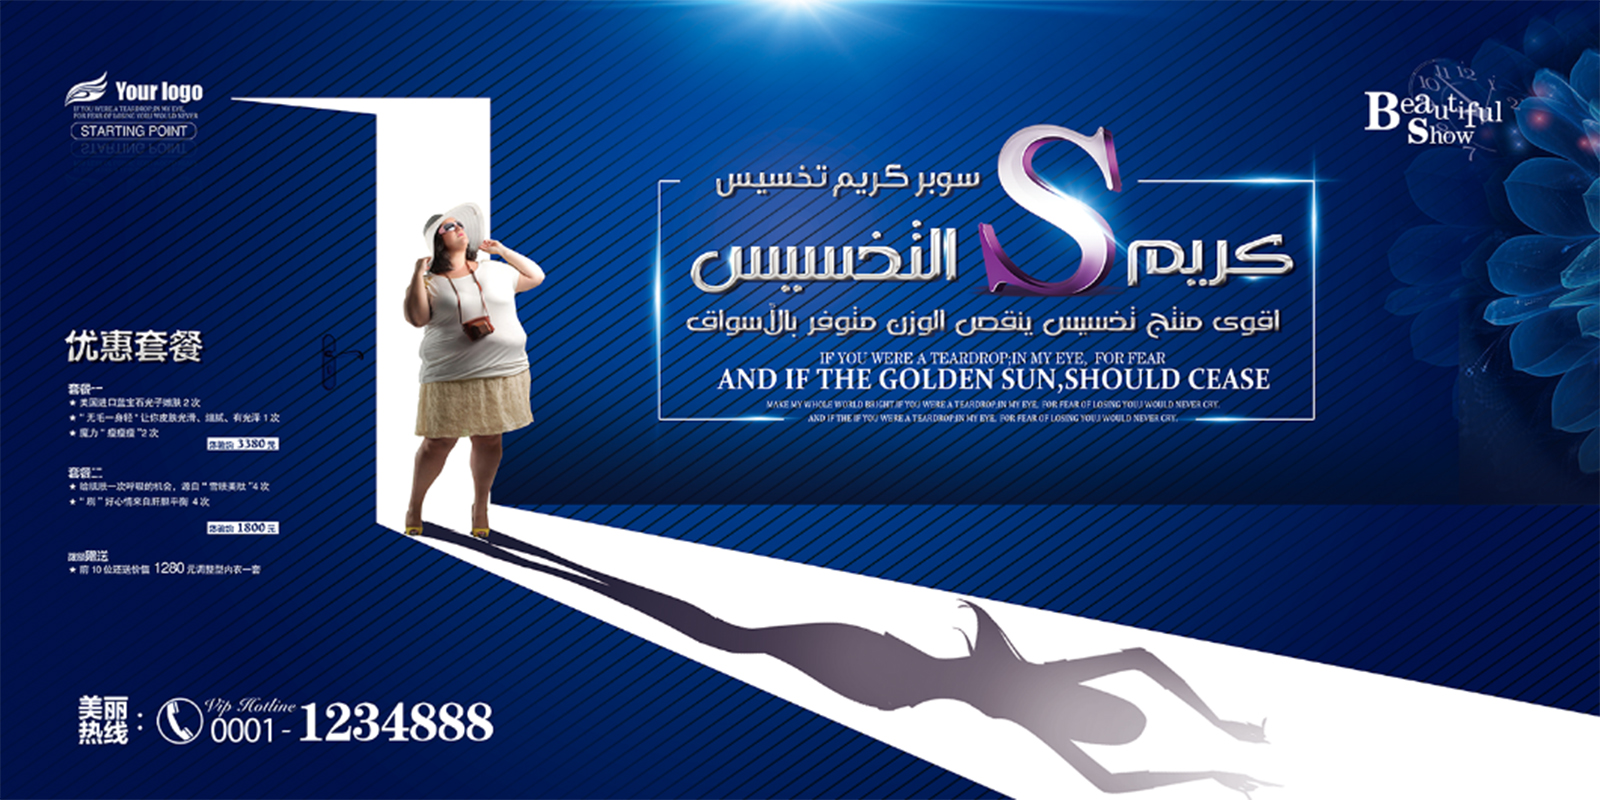 Special design for slimming products, a large banner suitable for print or web banners with adjusting sizes